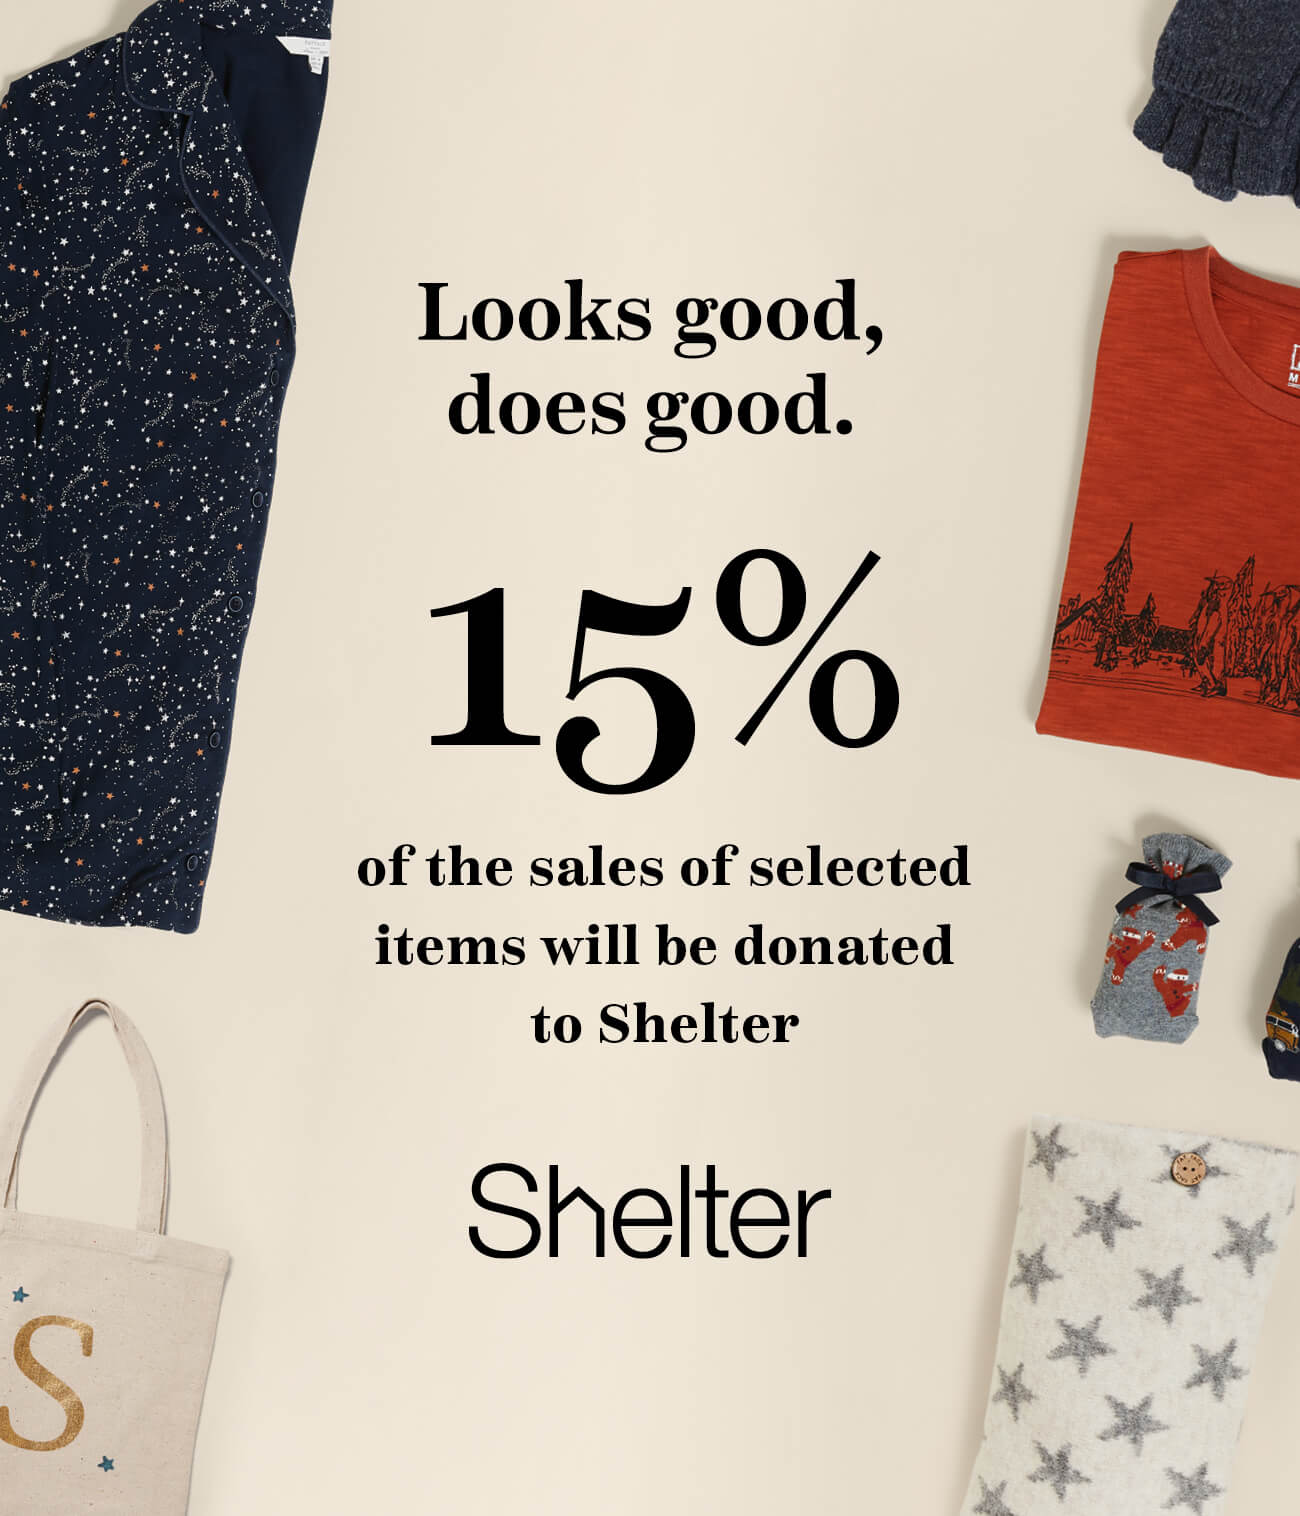 15% of the sales of selected items will be donated to Shelter.